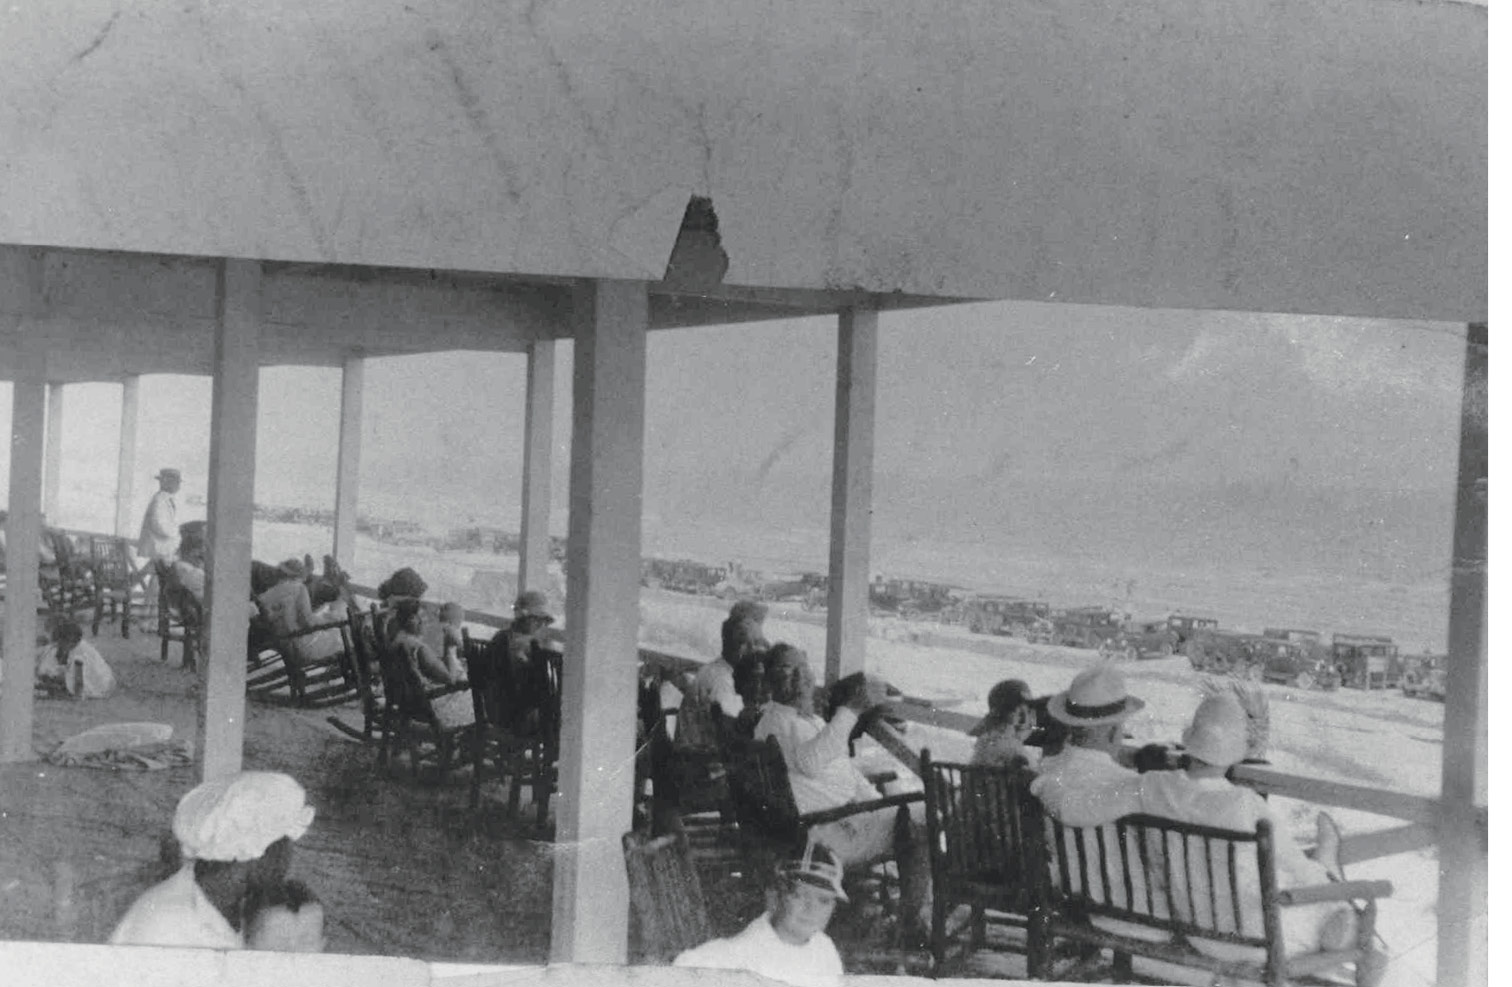 Kicking back at the Pavilion, circa 1930